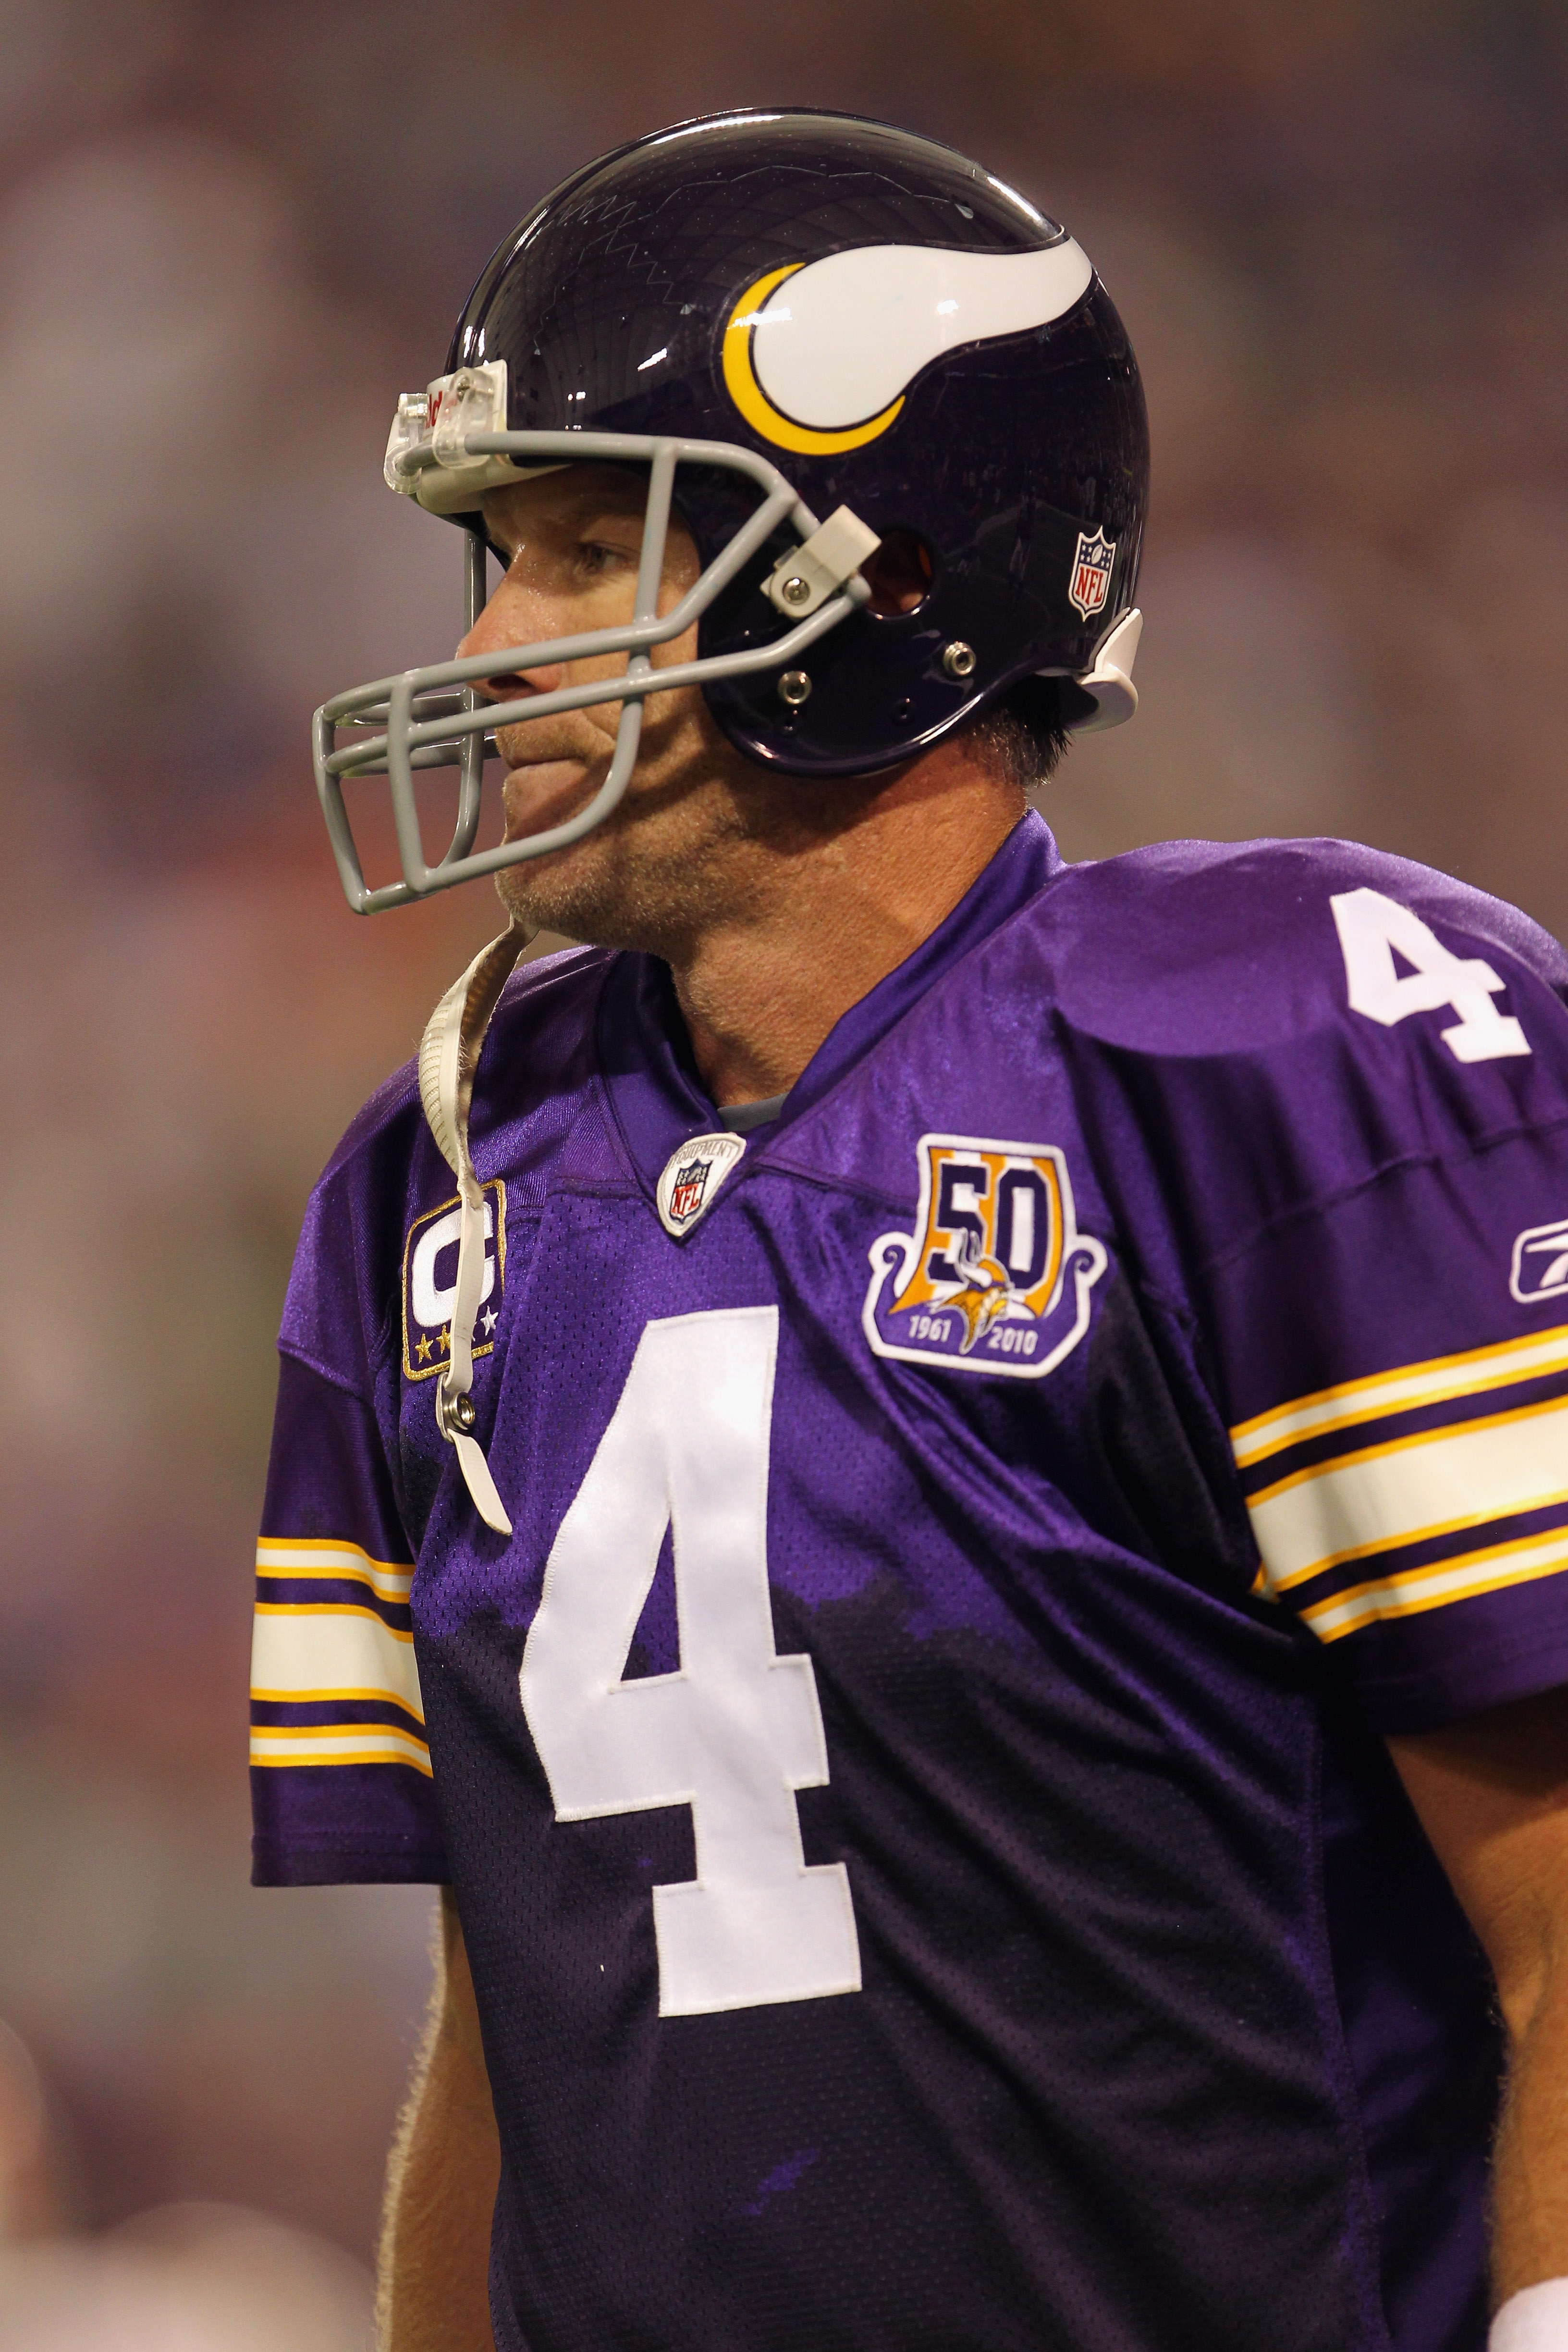 MINNEAPOLIS - SEPTEMBER 19:  Quarterback Brett Favre #4 of the Minnesota Vikings in action during the game against the Miami Dolphins on September 19, 2010 at Hubert H. Humphrey Metrodome in Minneapolis, Minnesota.  (Photo by Jamie Squire/Getty Images)